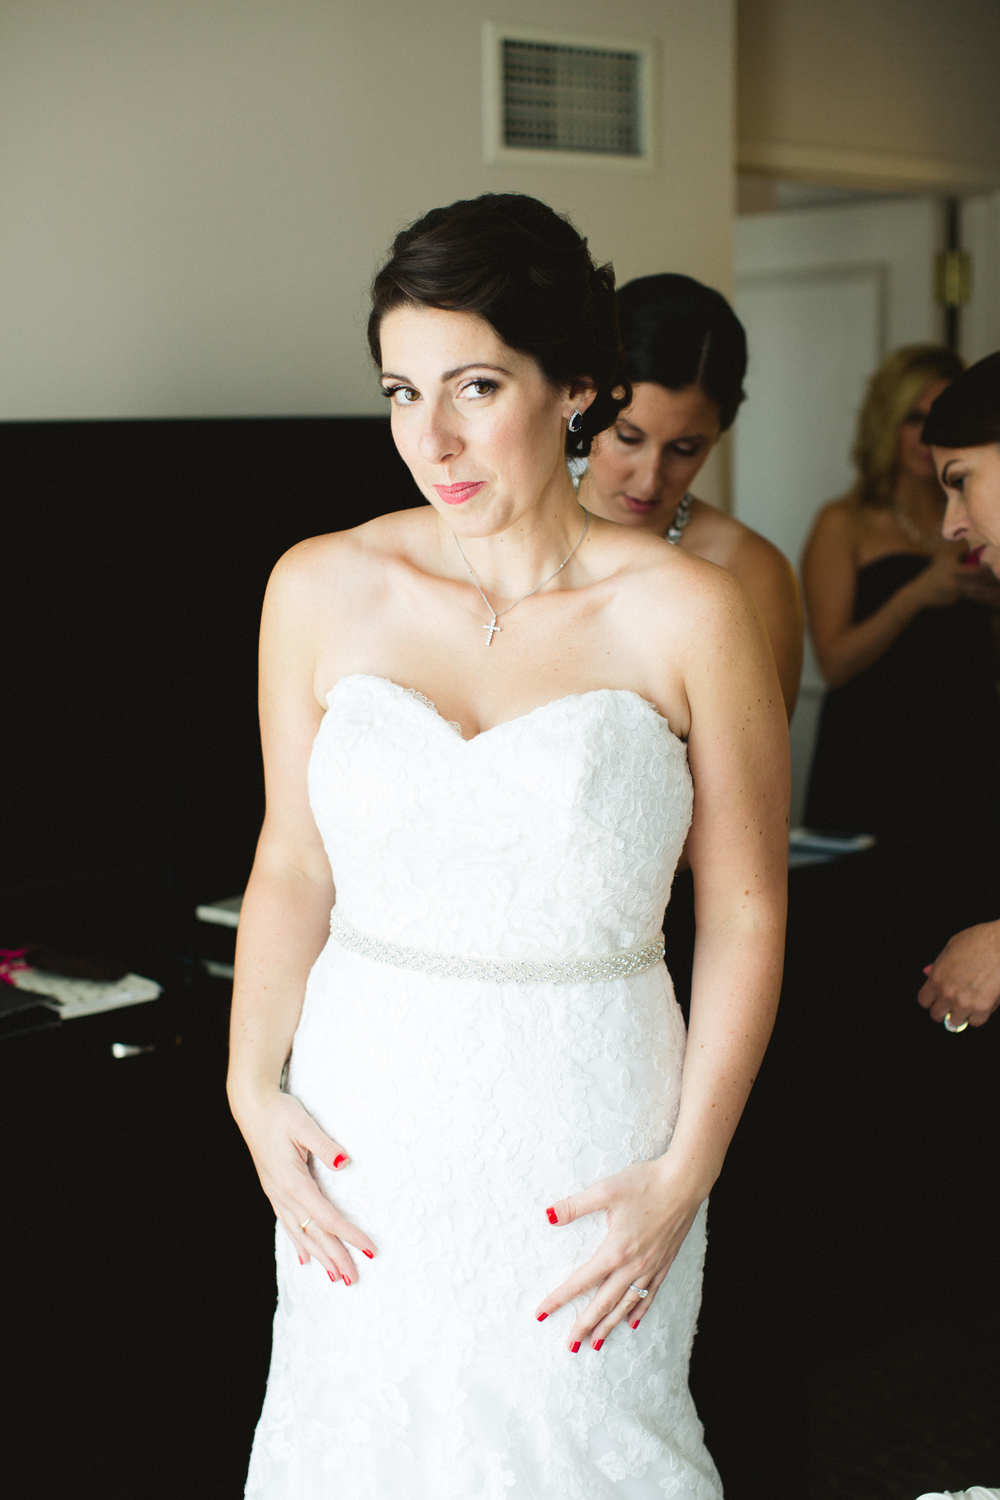 Vness_Photography_Wedding_Photographer_Washington-DC_Fish_Wedding-156.JPG